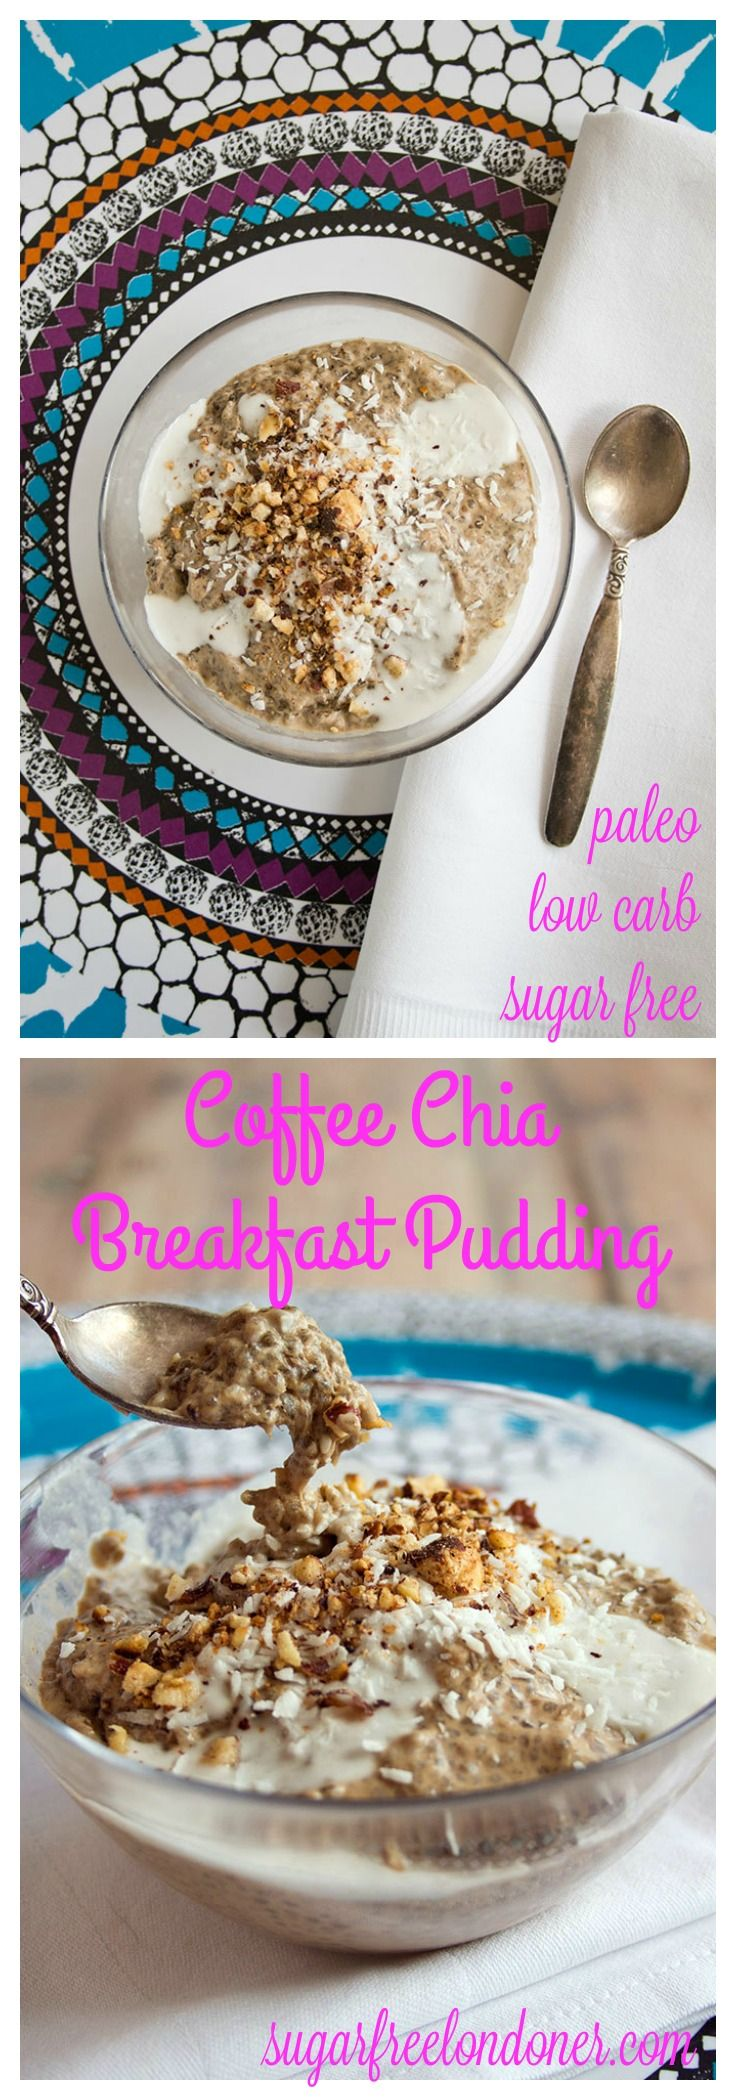 Easy to make and intensely delicious: Prepare this coffee chia breakfast pudding in advance and enjoy it the next morning. A sugar free, low carb, vegan and gluten free breakfast.